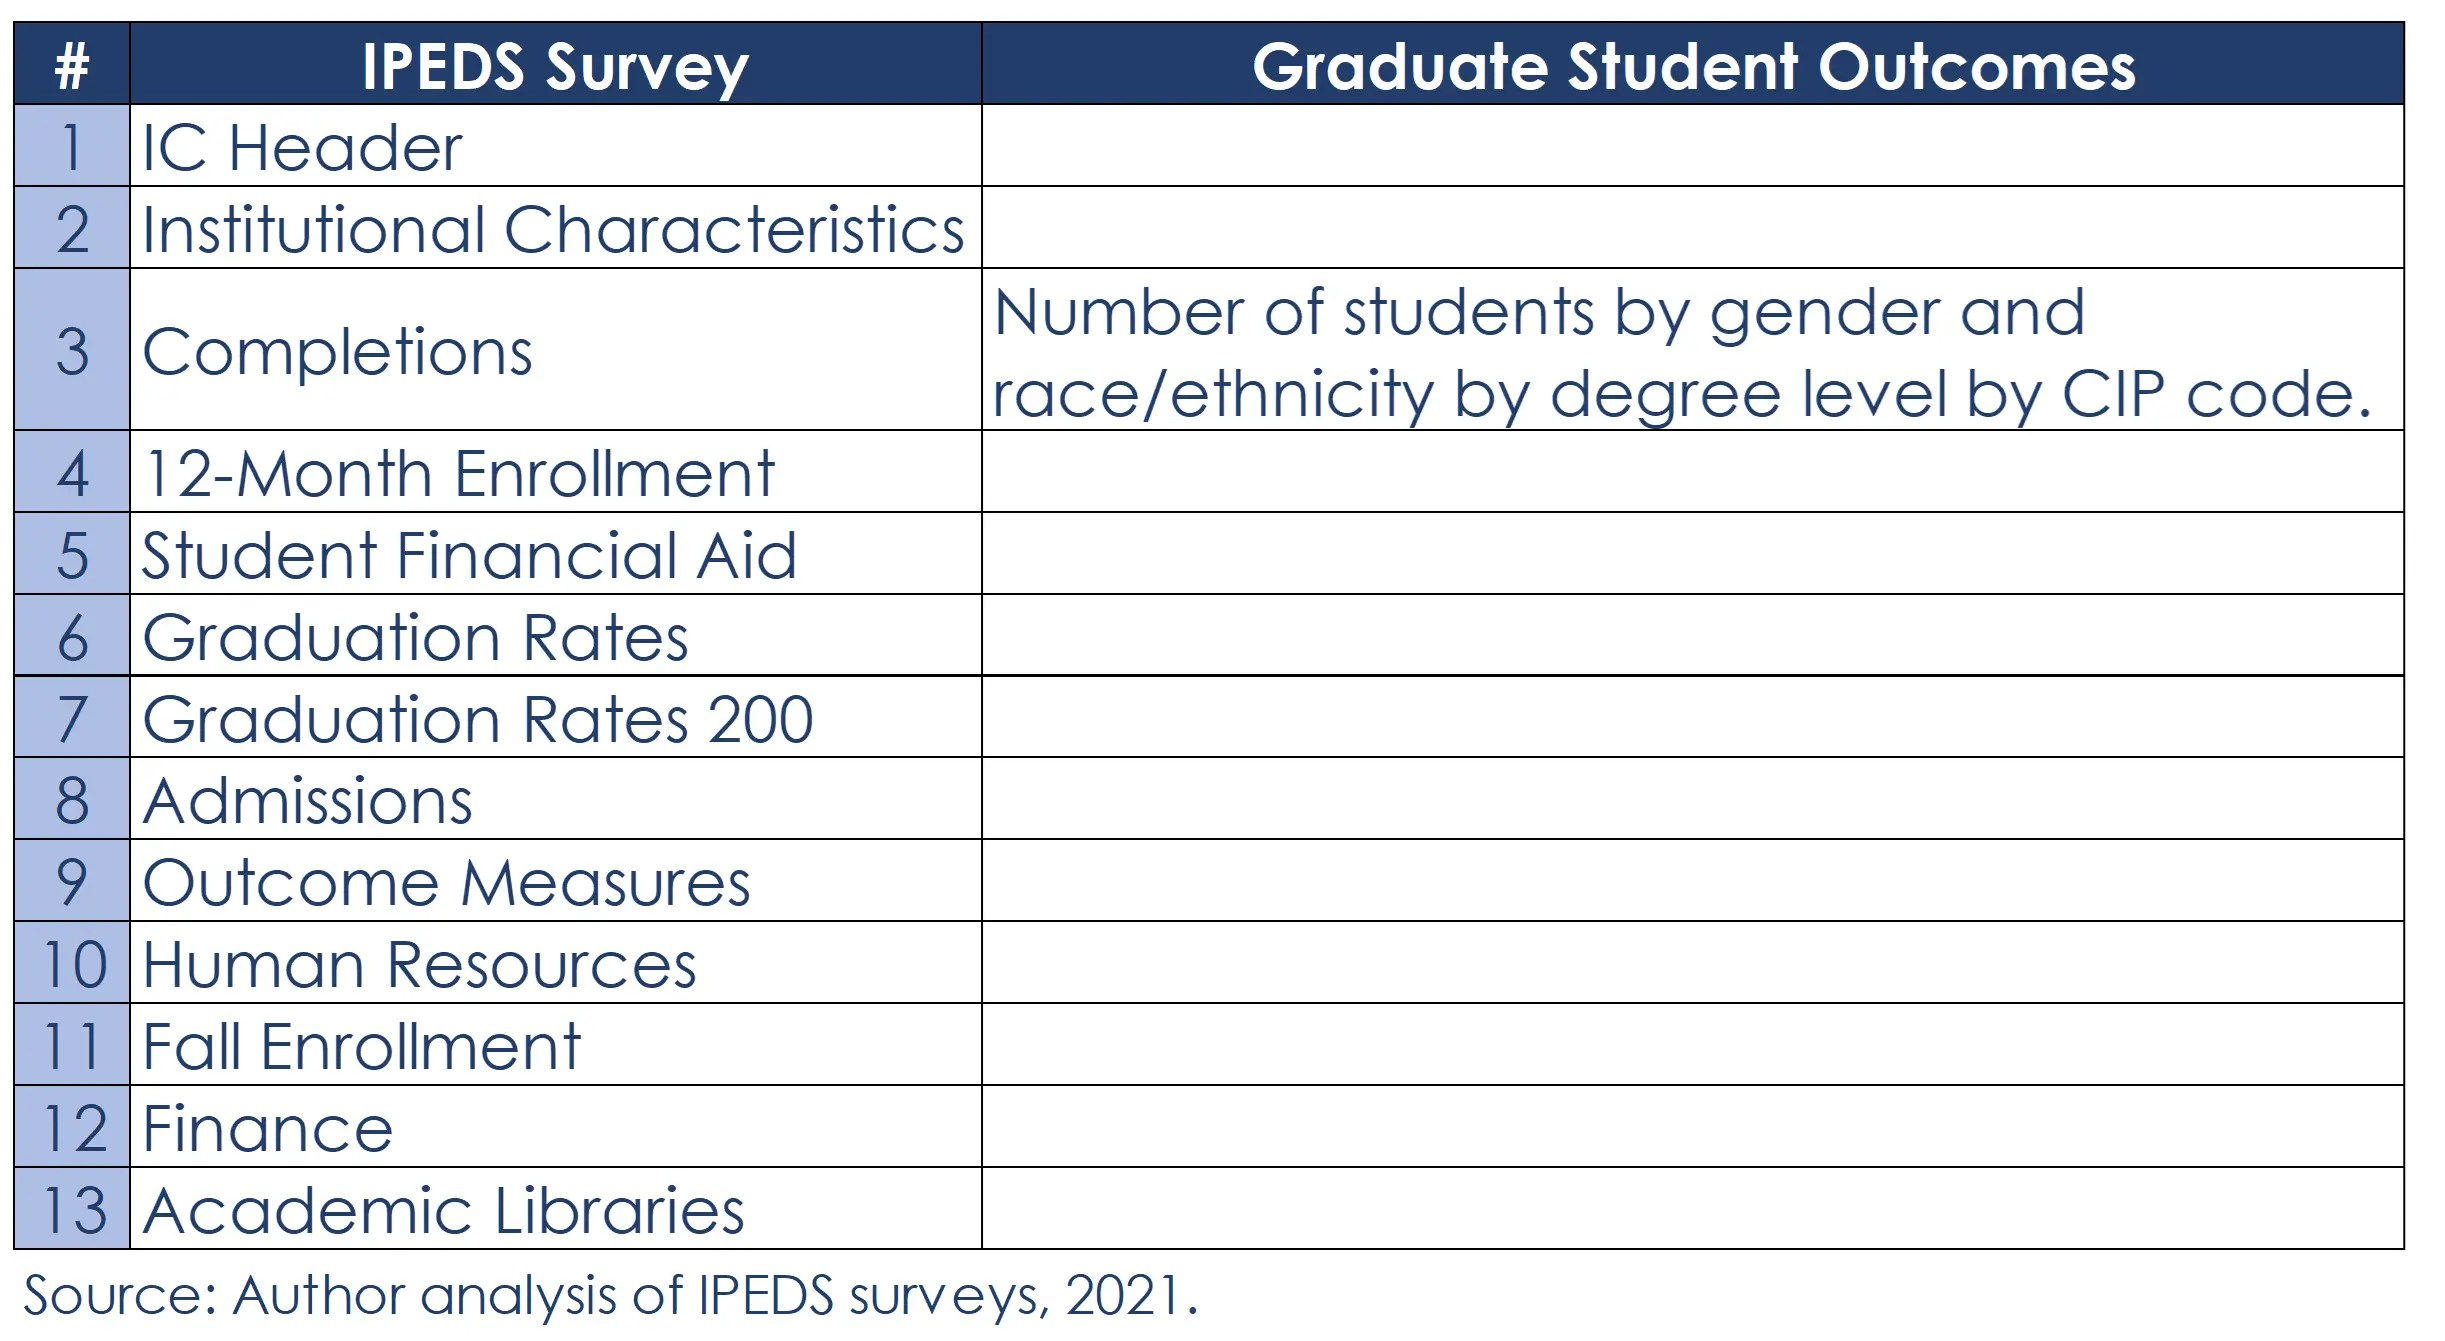 List of IPEDS Surveys - one with Grad Student Outcomes